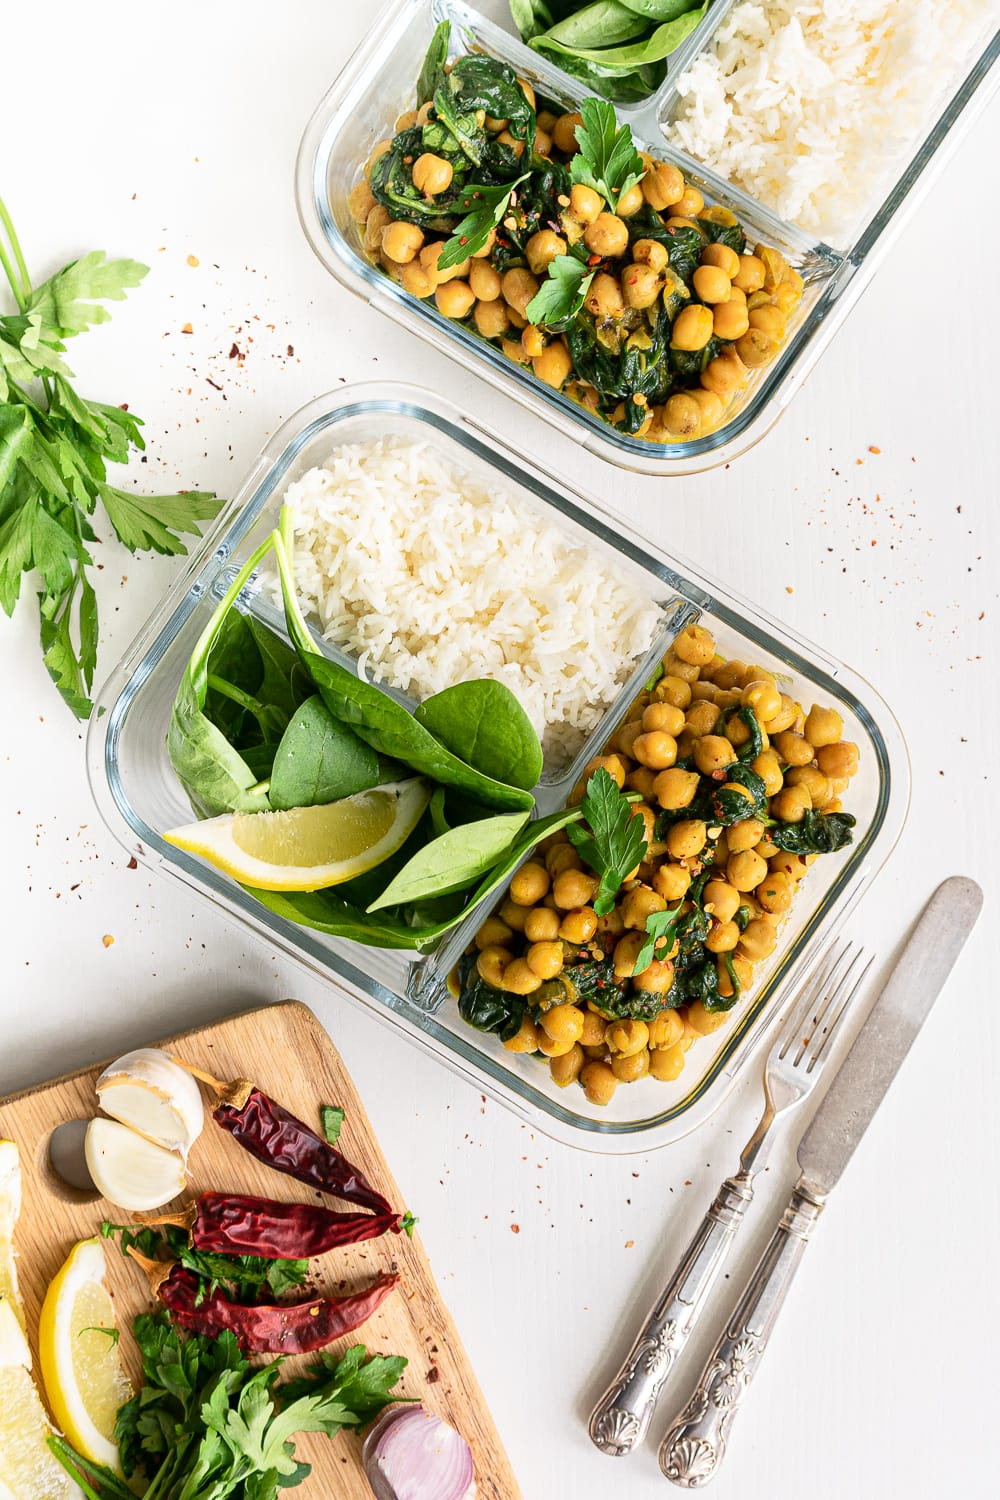 A delicious chickpea curry in meal prep containers: the perfect dish to meal prep on Sunday!